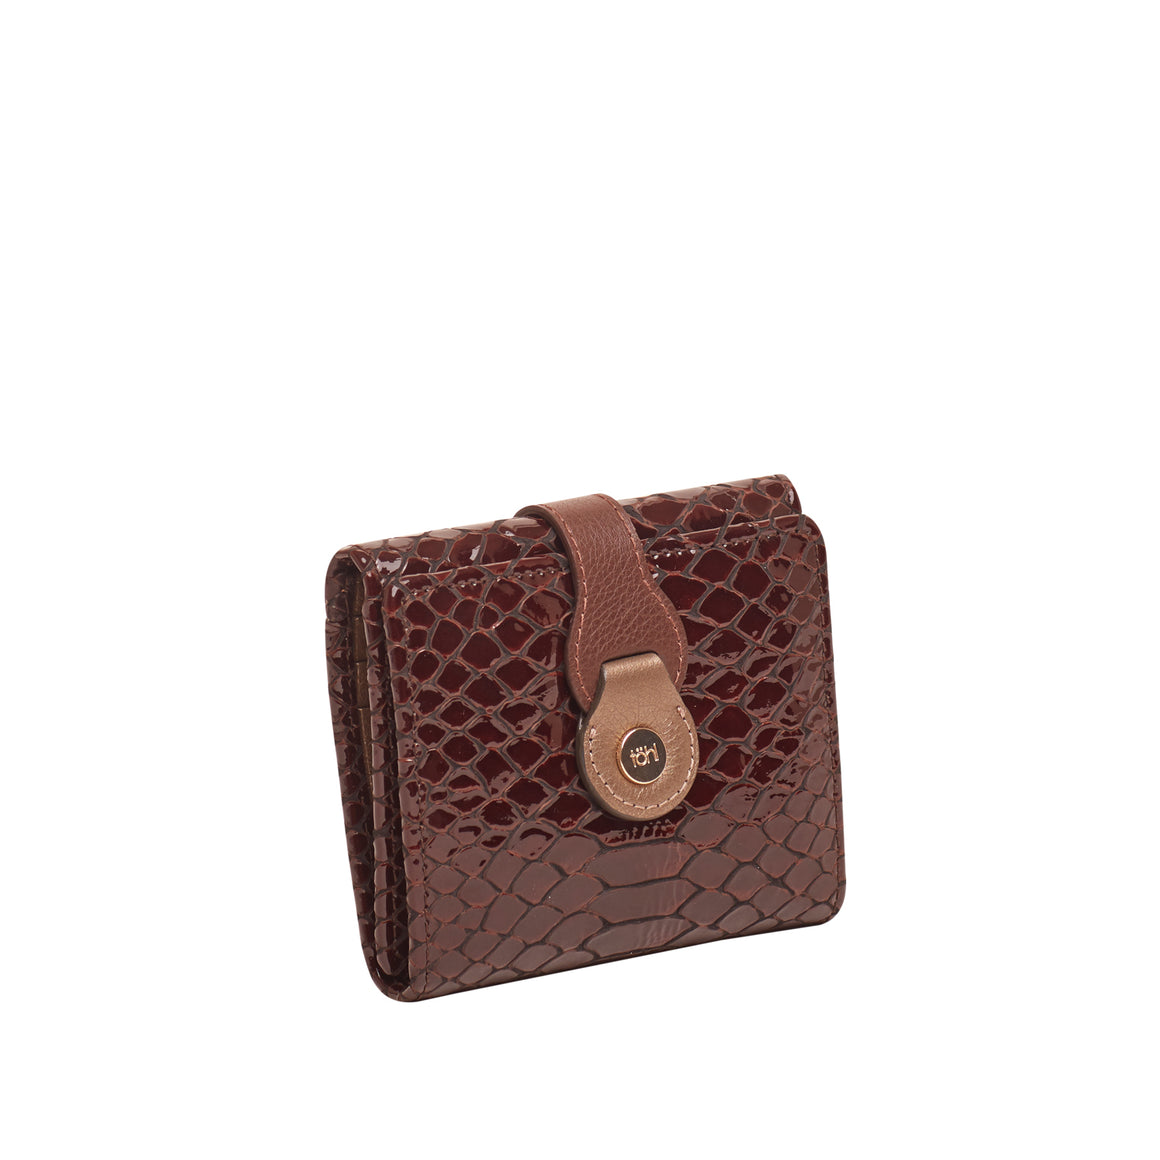 WT 0015 - TOHL PALMA MINI WOMEN'S WALLET - DEVIL ANGELINA